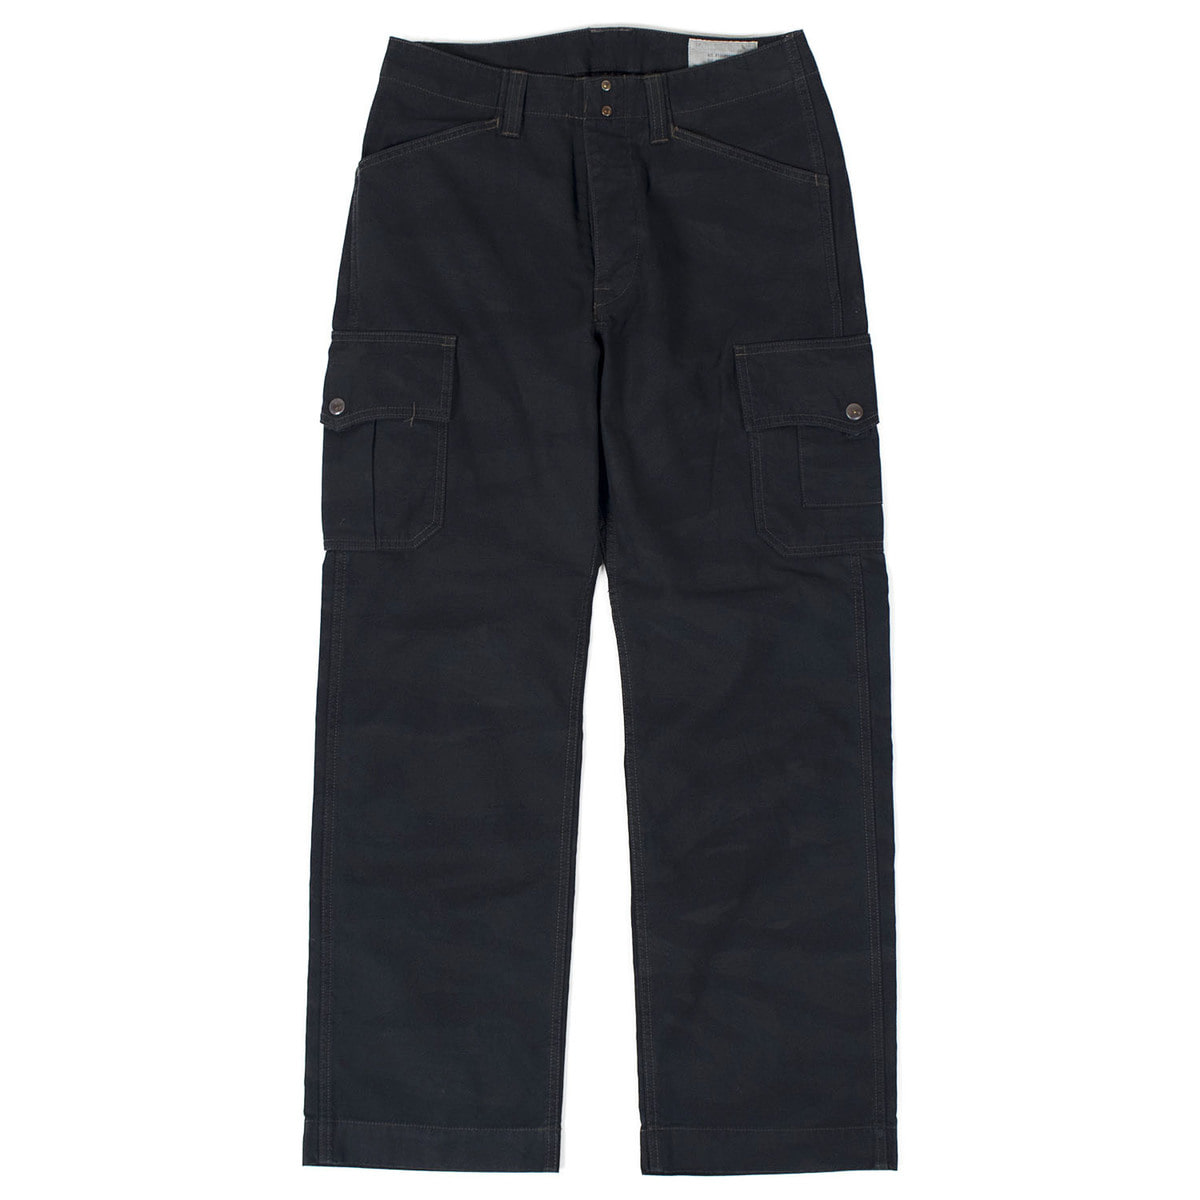 Tigerstripe Fatigue Pants (Black)